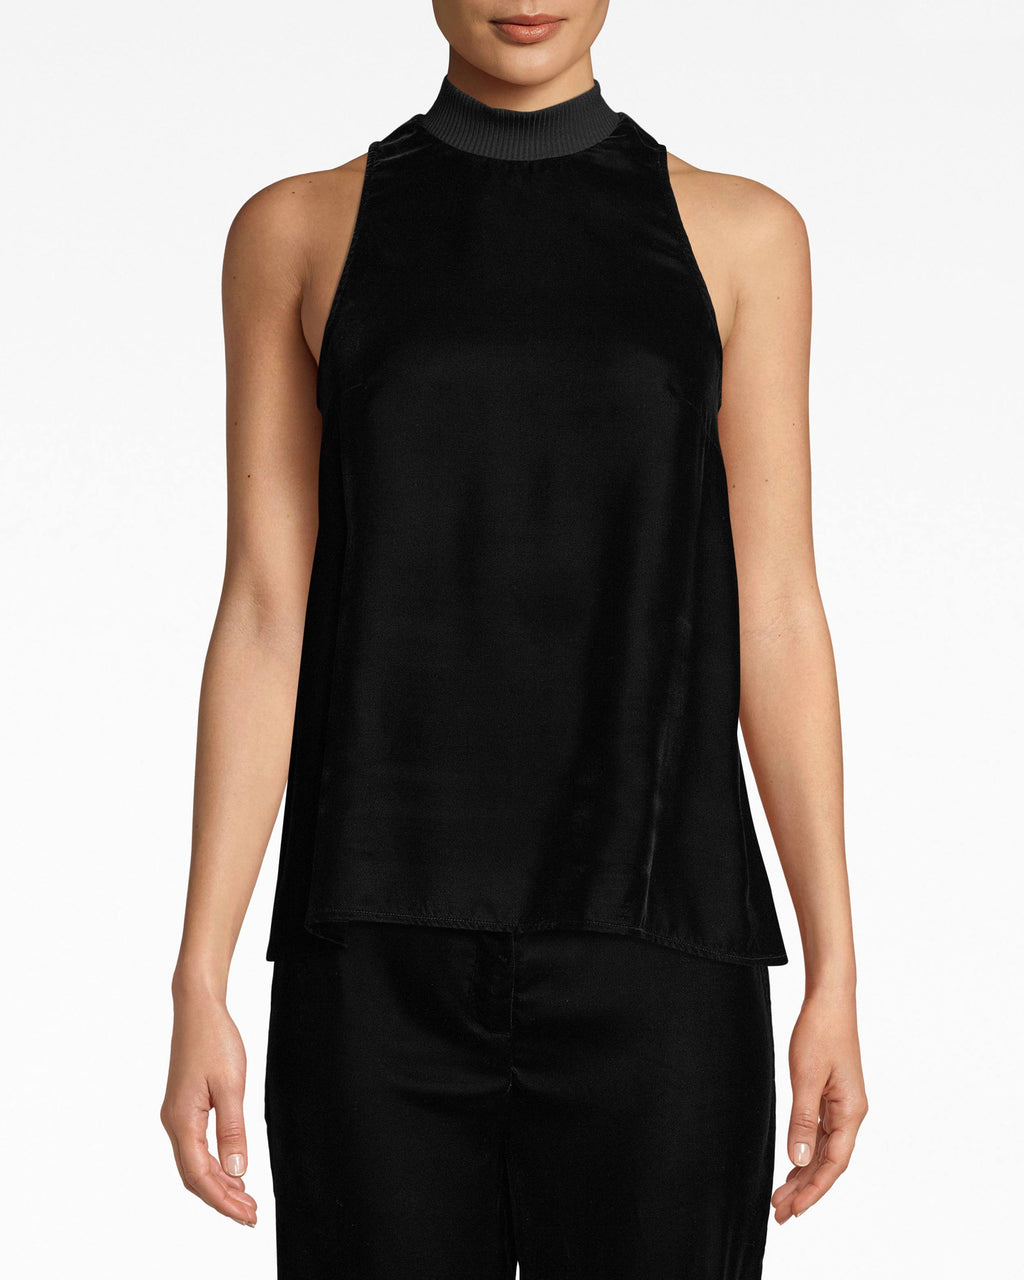 AQ10072 - LIGHTWEIGHT VELVET MOCK NECK TANK - tops - blouses - Versatility comes in velvet. This mock neck tank is easily pairable with skirts, denim and jackets. The ribbed neck adds a fresh element.